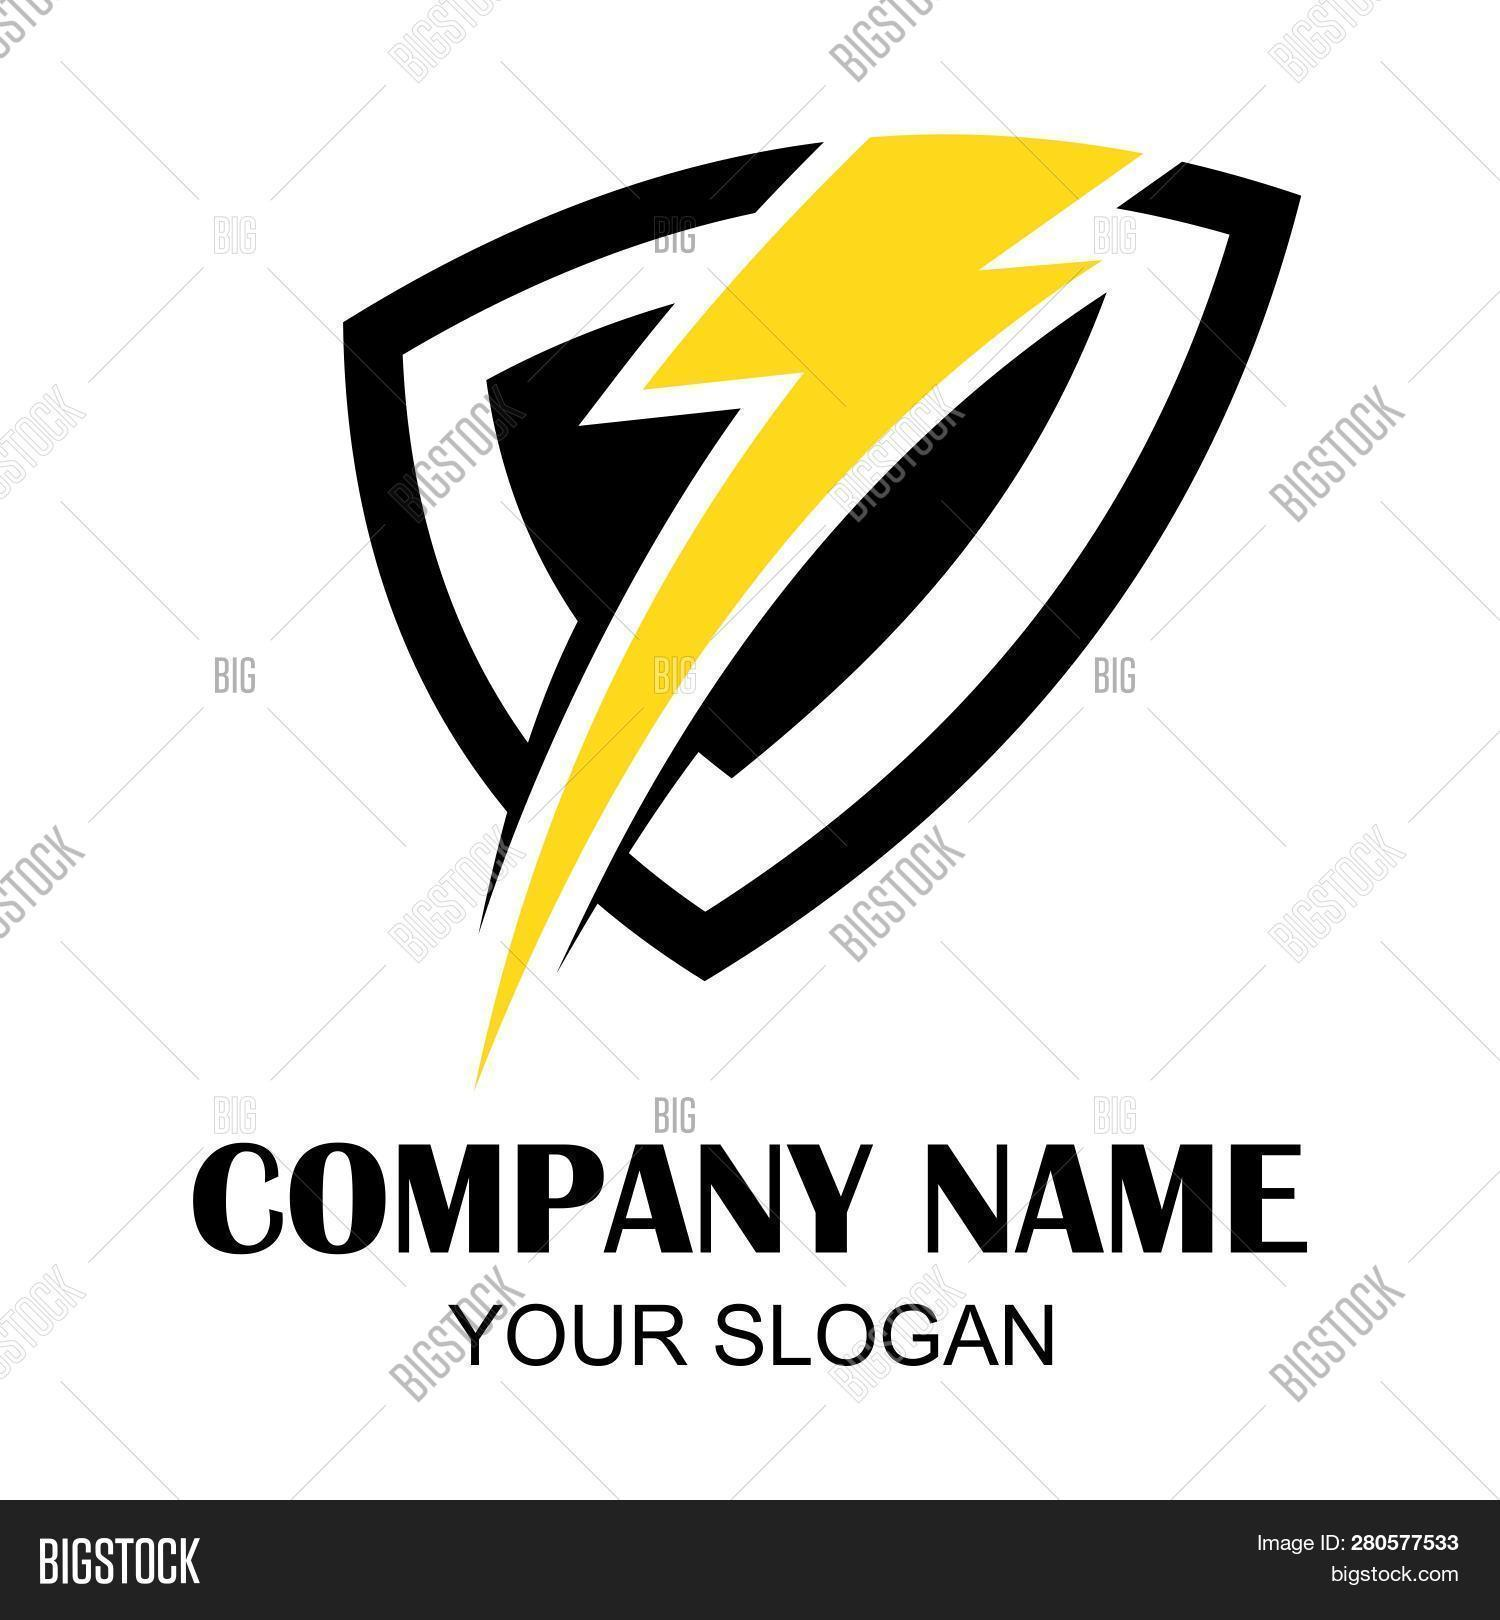 lightning electric image photo free trial bigstock lightning electric image photo free